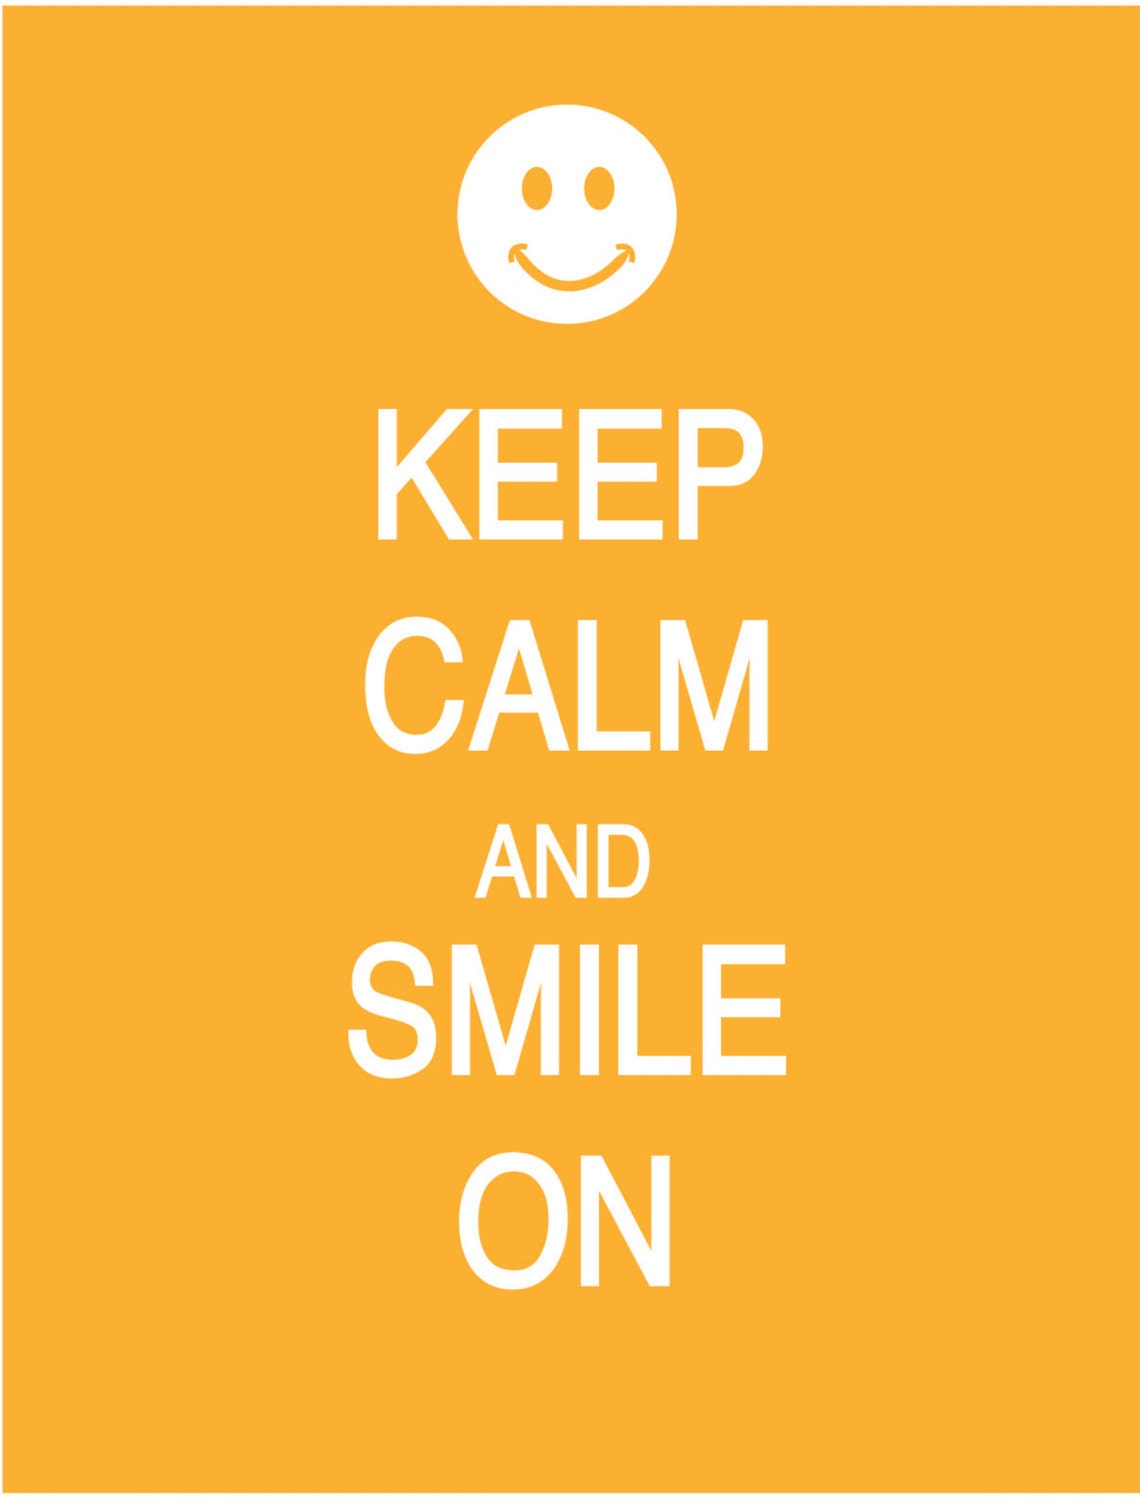 Like this item Keep Calm And Smile